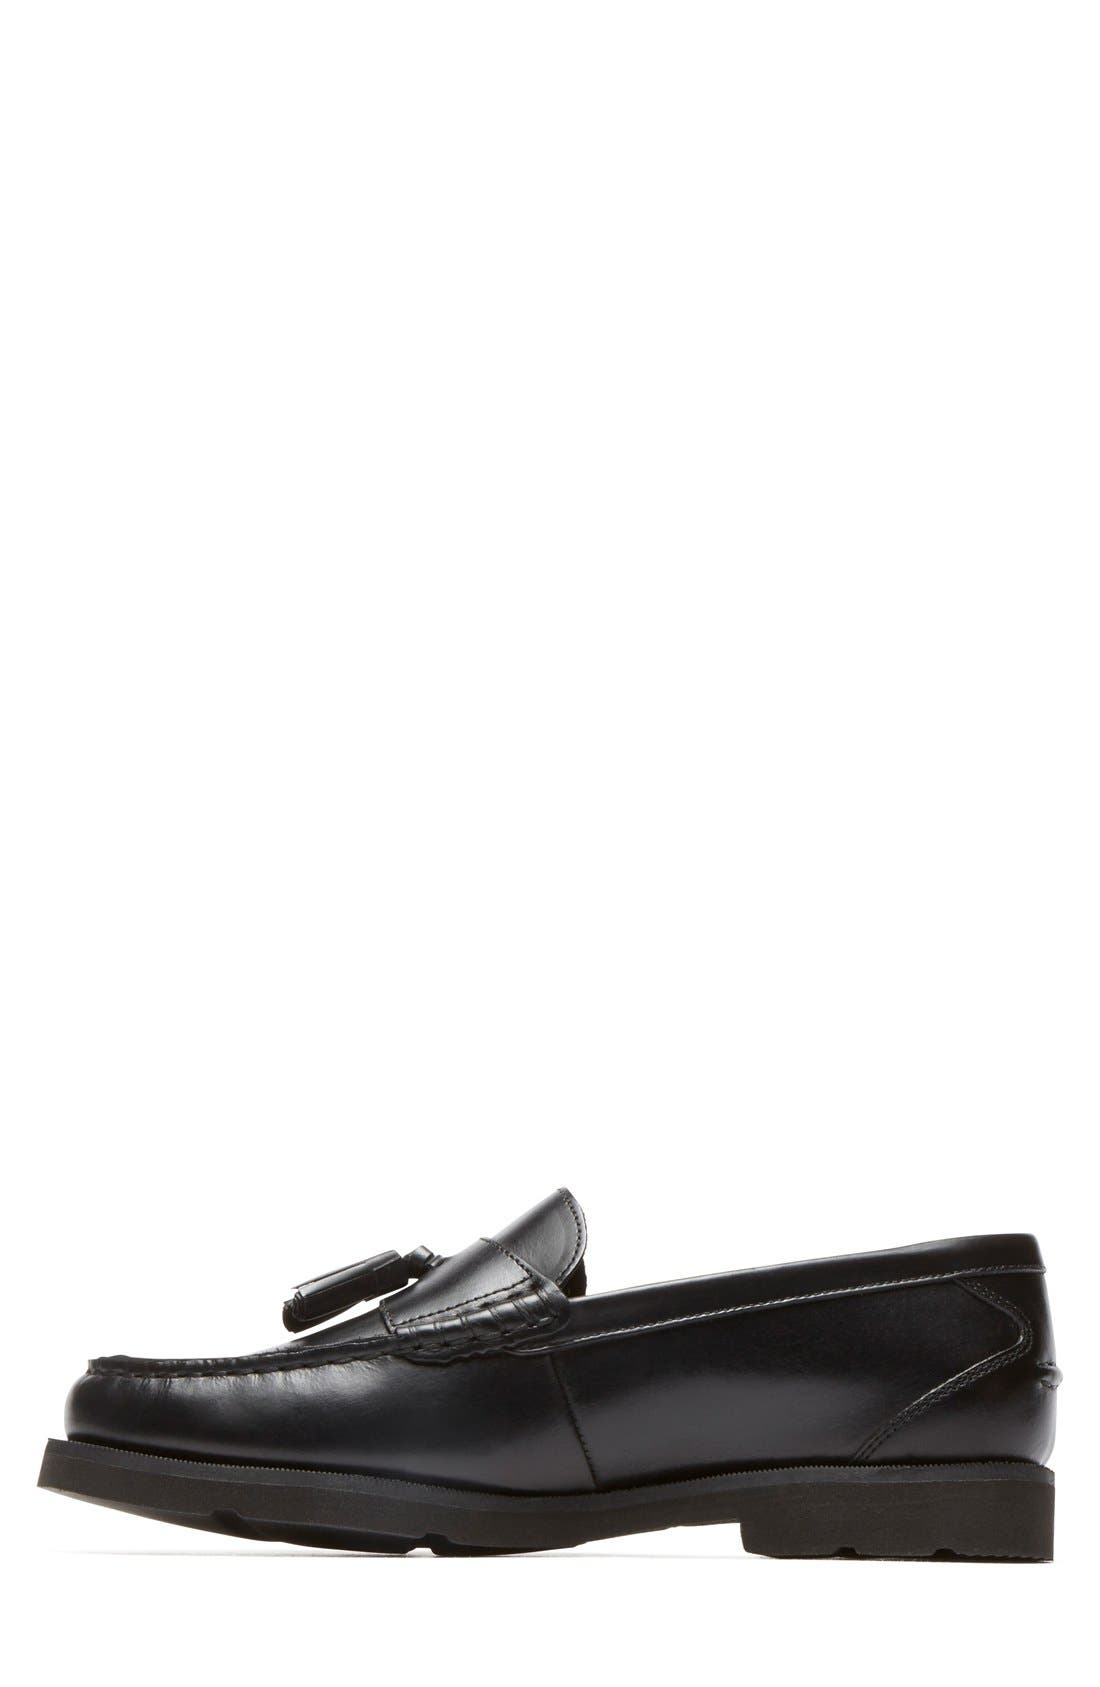 ROCKPORT,                             Modern Prep Tassel Loafer,                             Alternate thumbnail 2, color,                             001